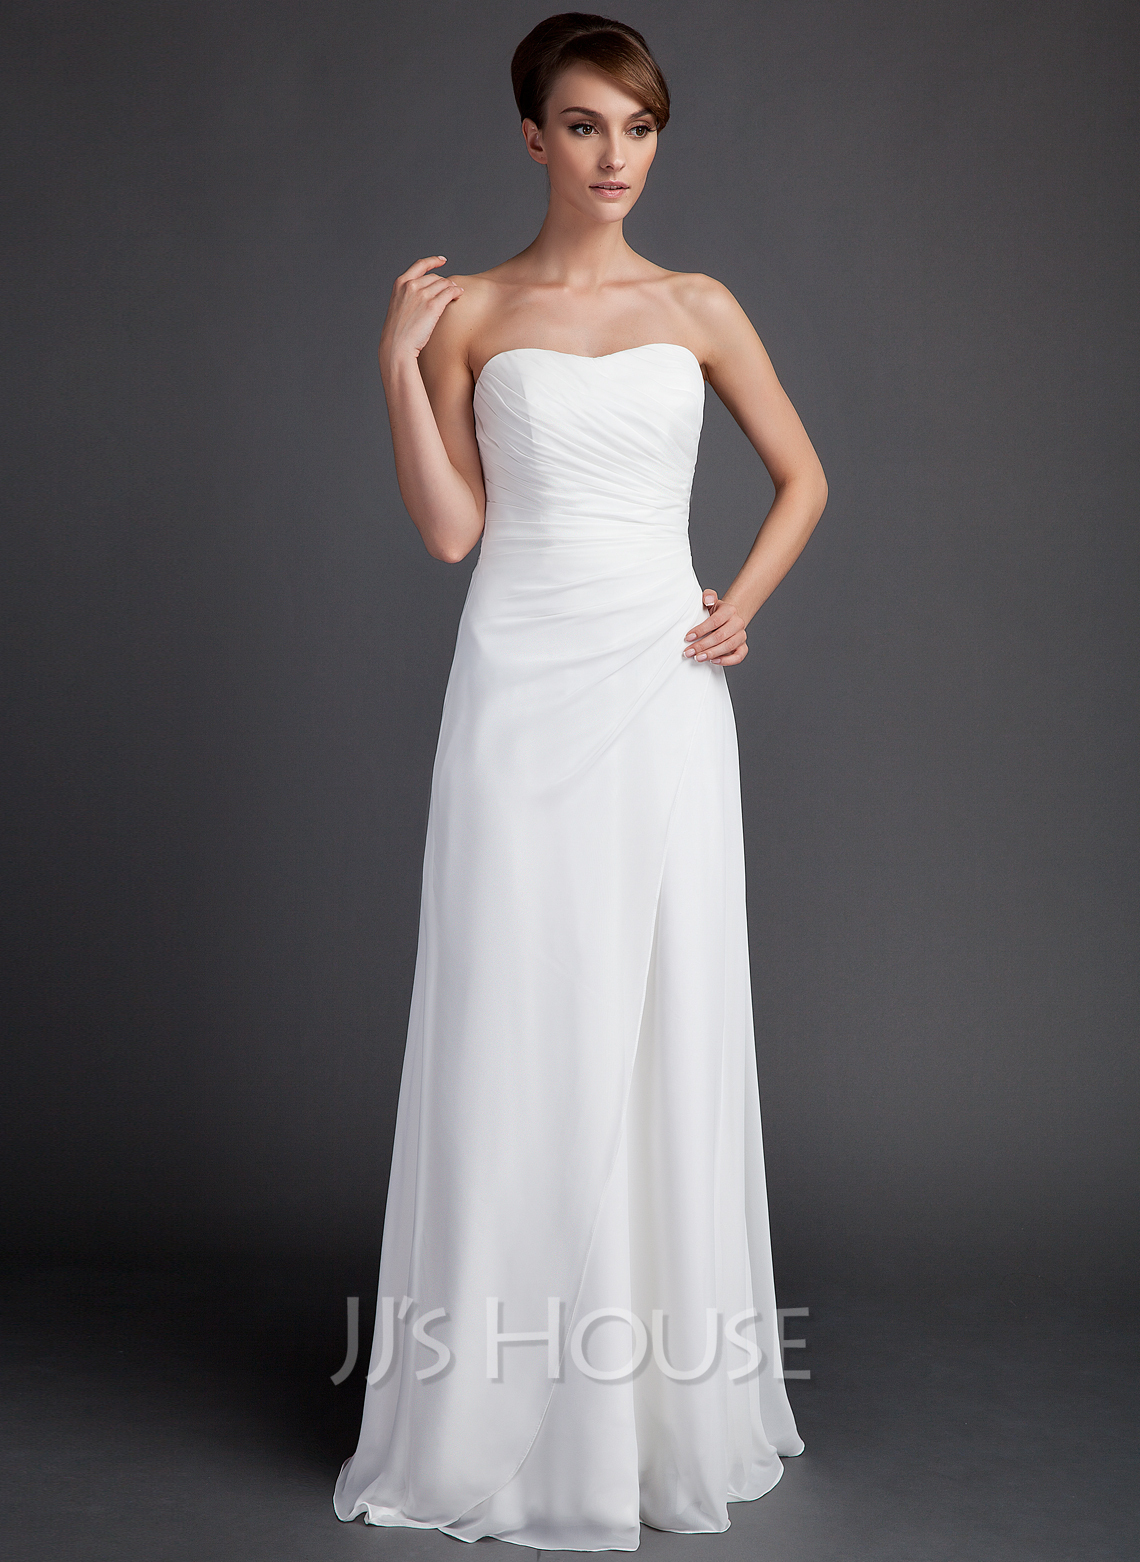 Sheath/Column Sweetheart Sweep Train Chiffon Wedding Dress With Ruffle ...